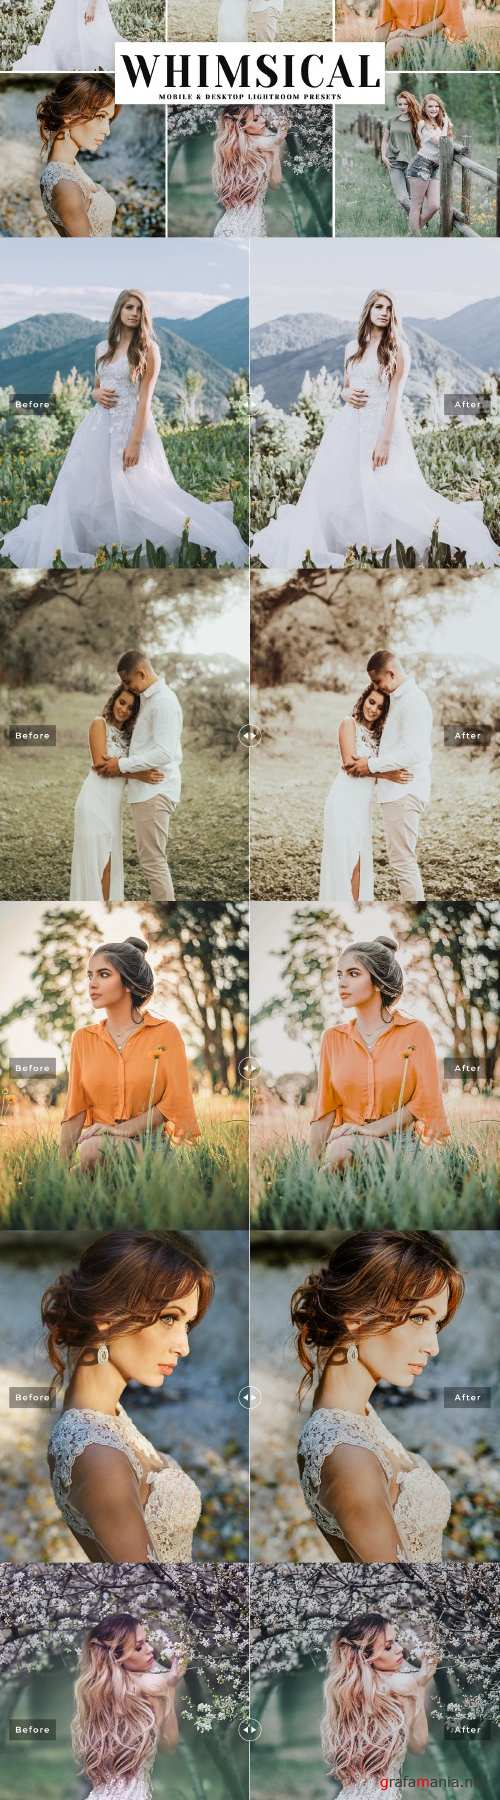 Whimsical Lightroom Presets Pack - 4045956